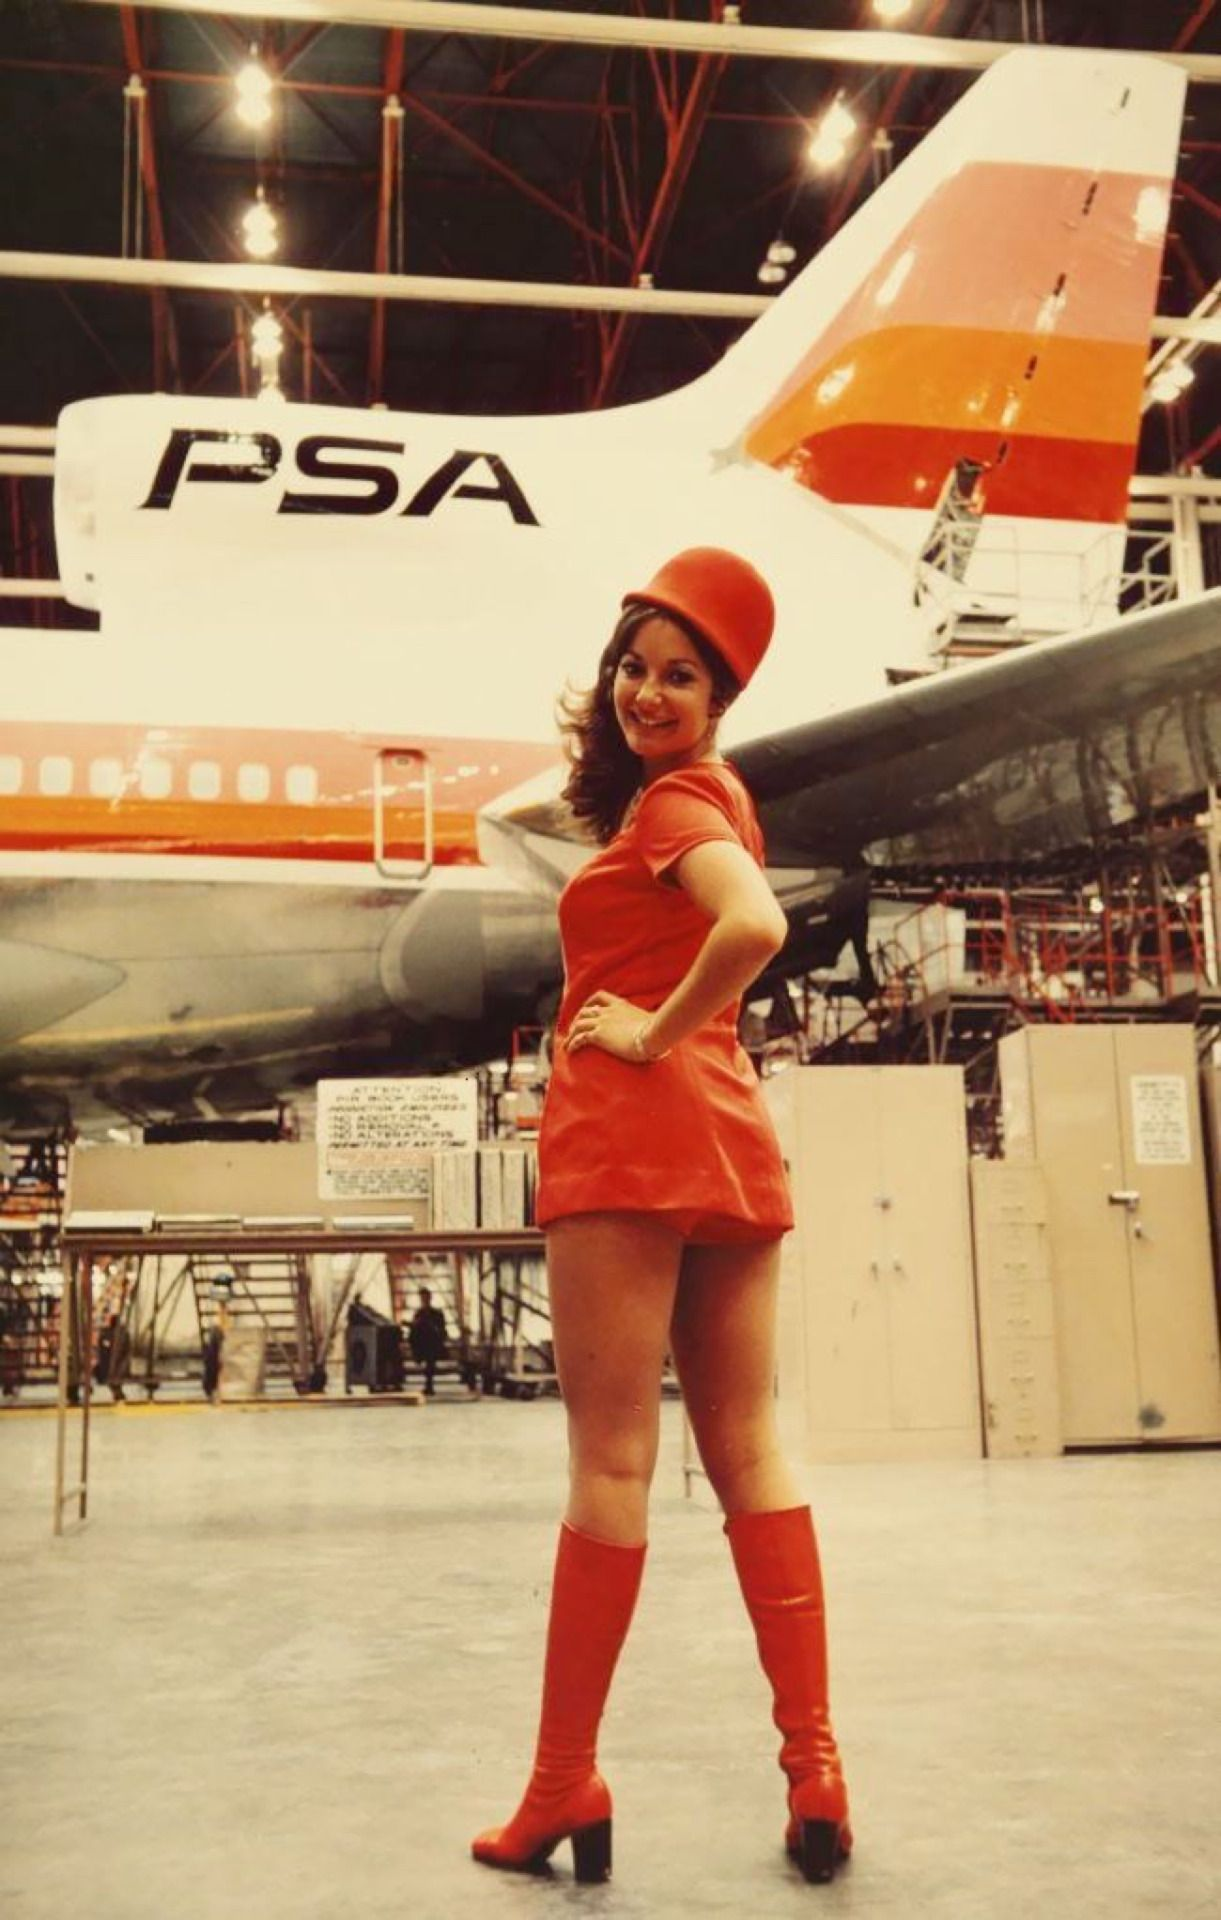 Pin By Kevin Ohlsson On Tumblr Flight Attendant Airline